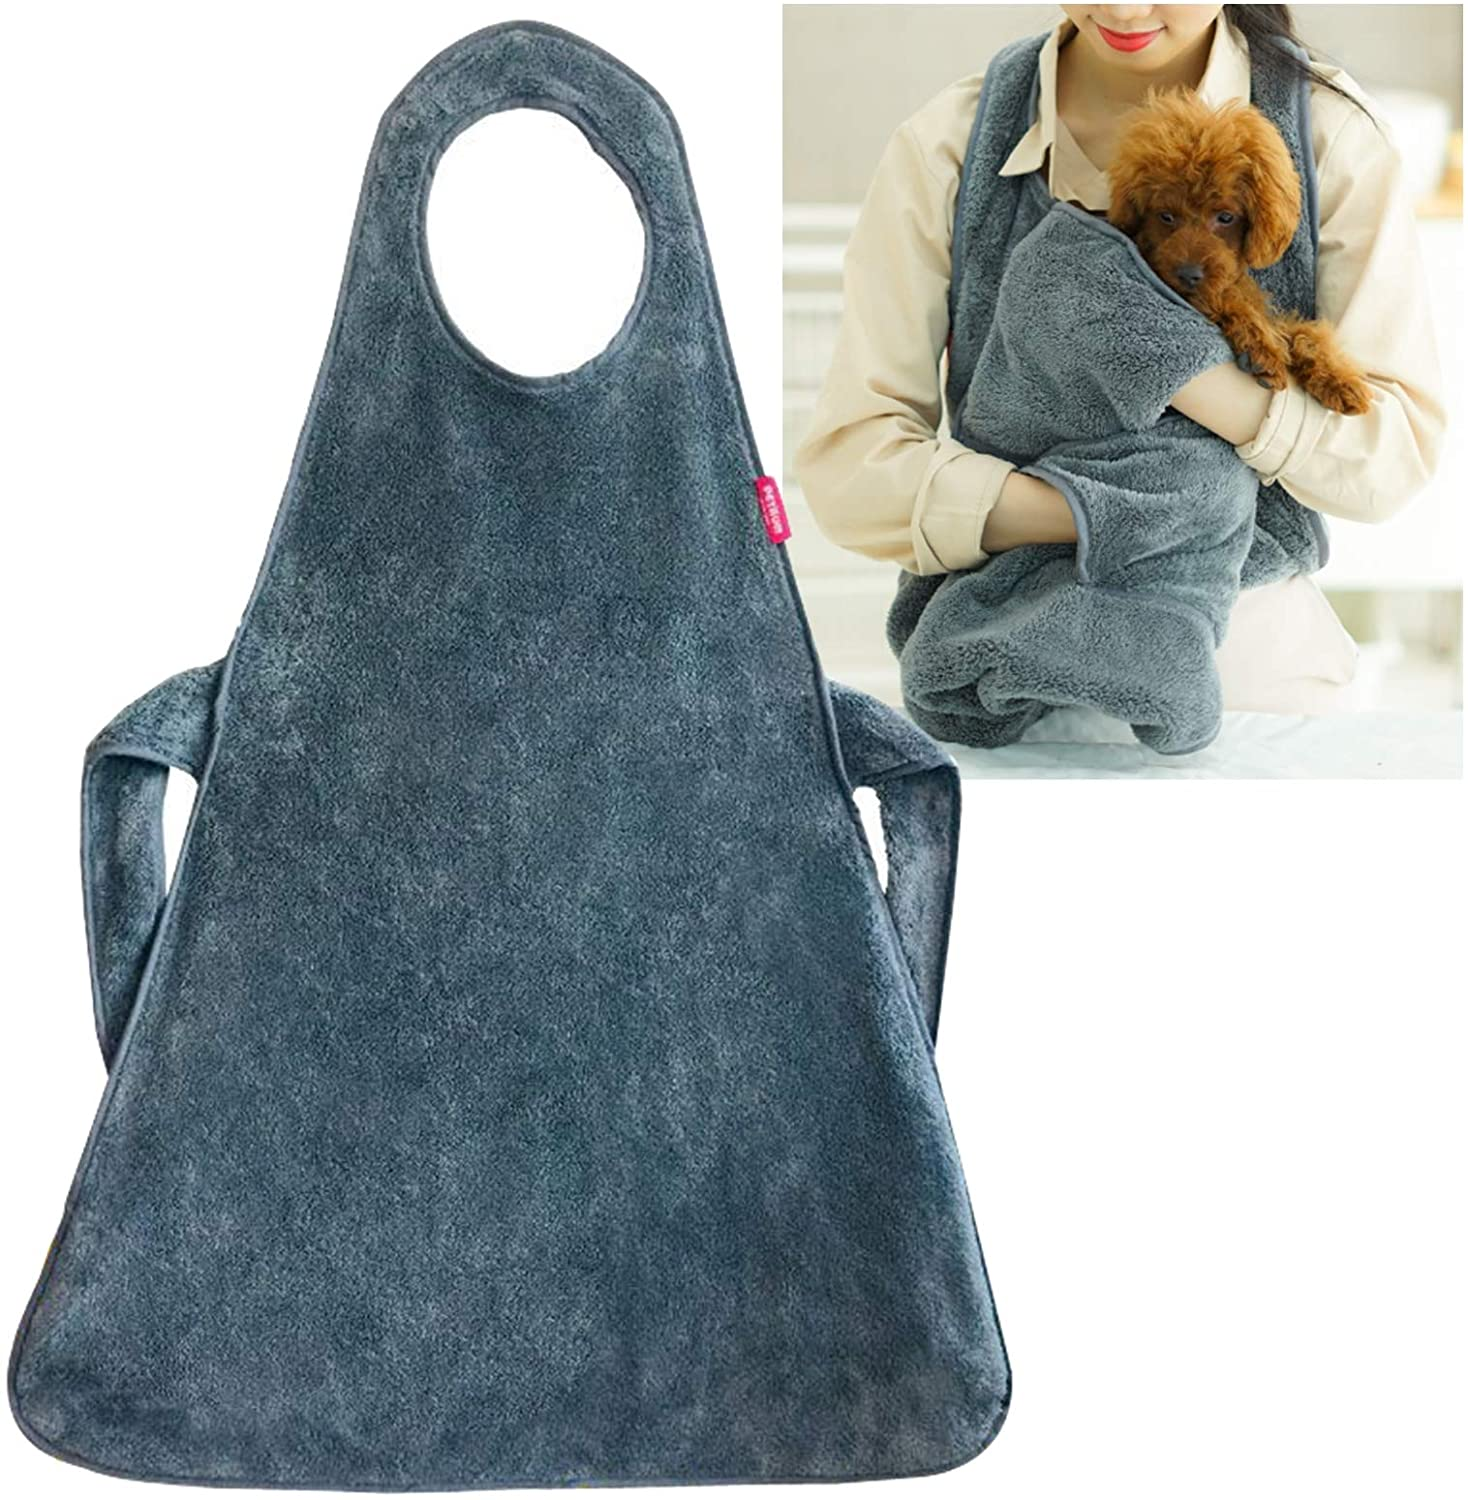 PETAUM] Premium Microfiber Pet Apron Towel – Super Absorbent and Quick Drying – Perfect for You and Dogs and Cats